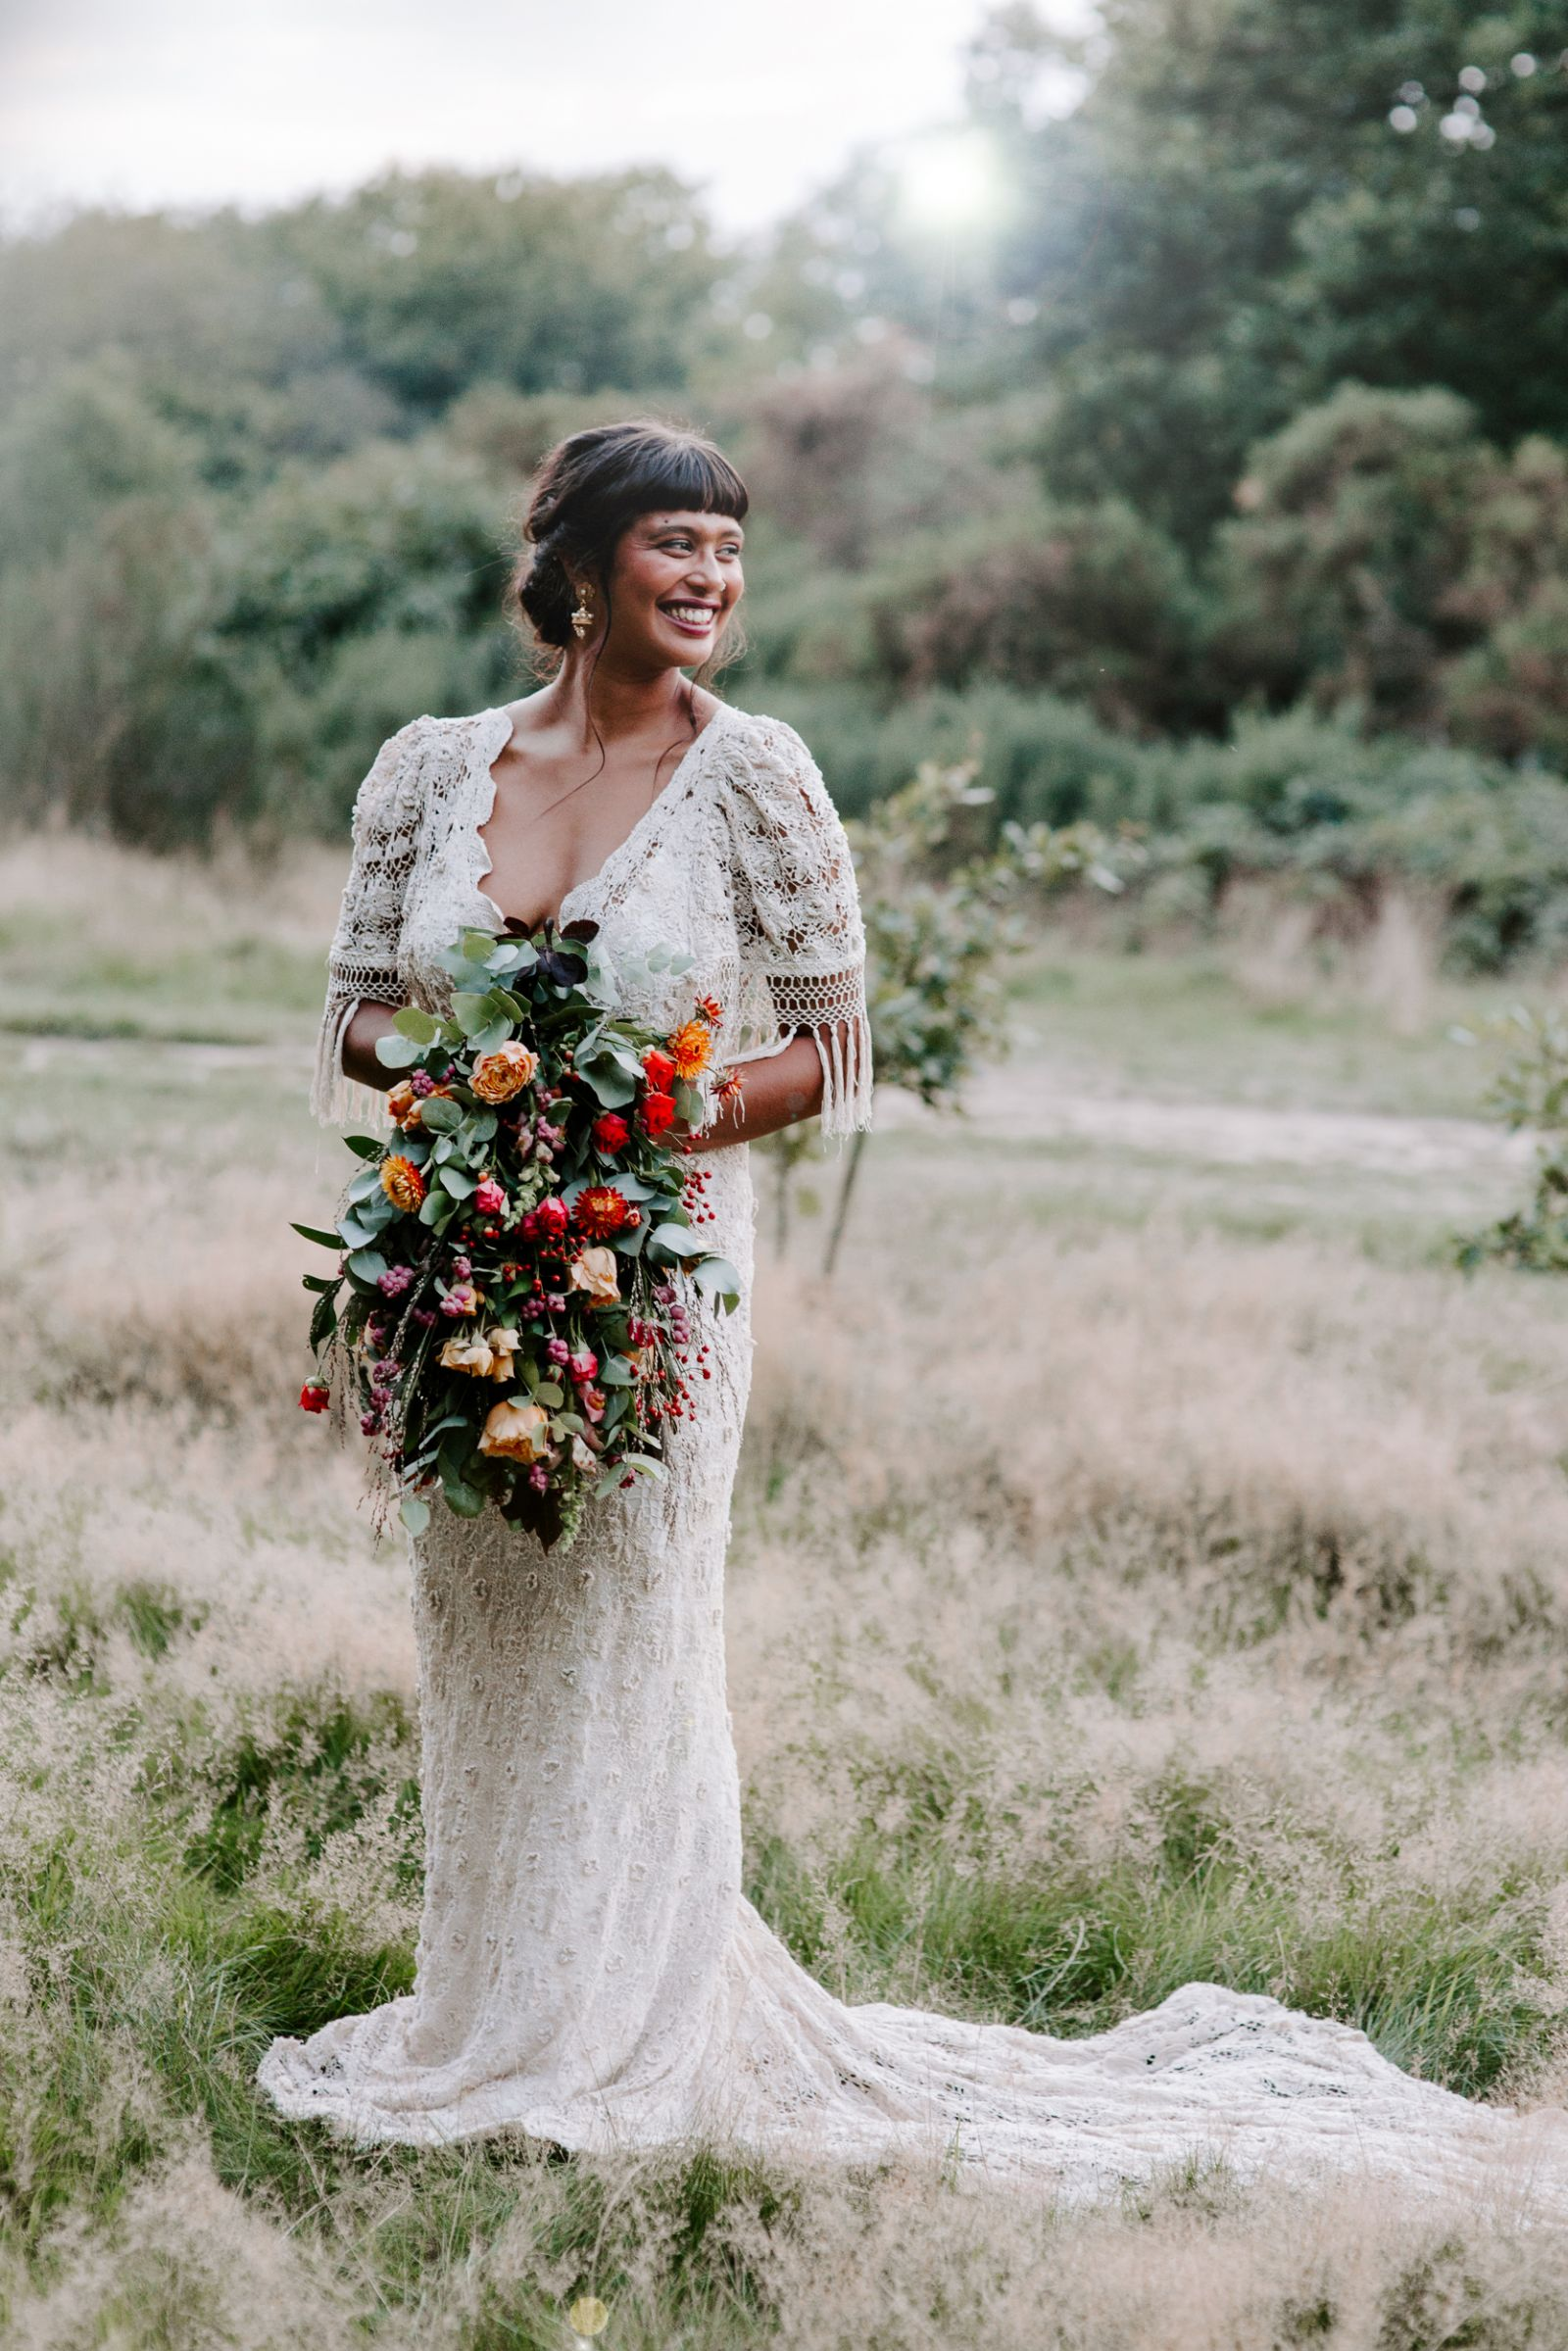 Bride in Poppy Perspective dress in Epping Forest